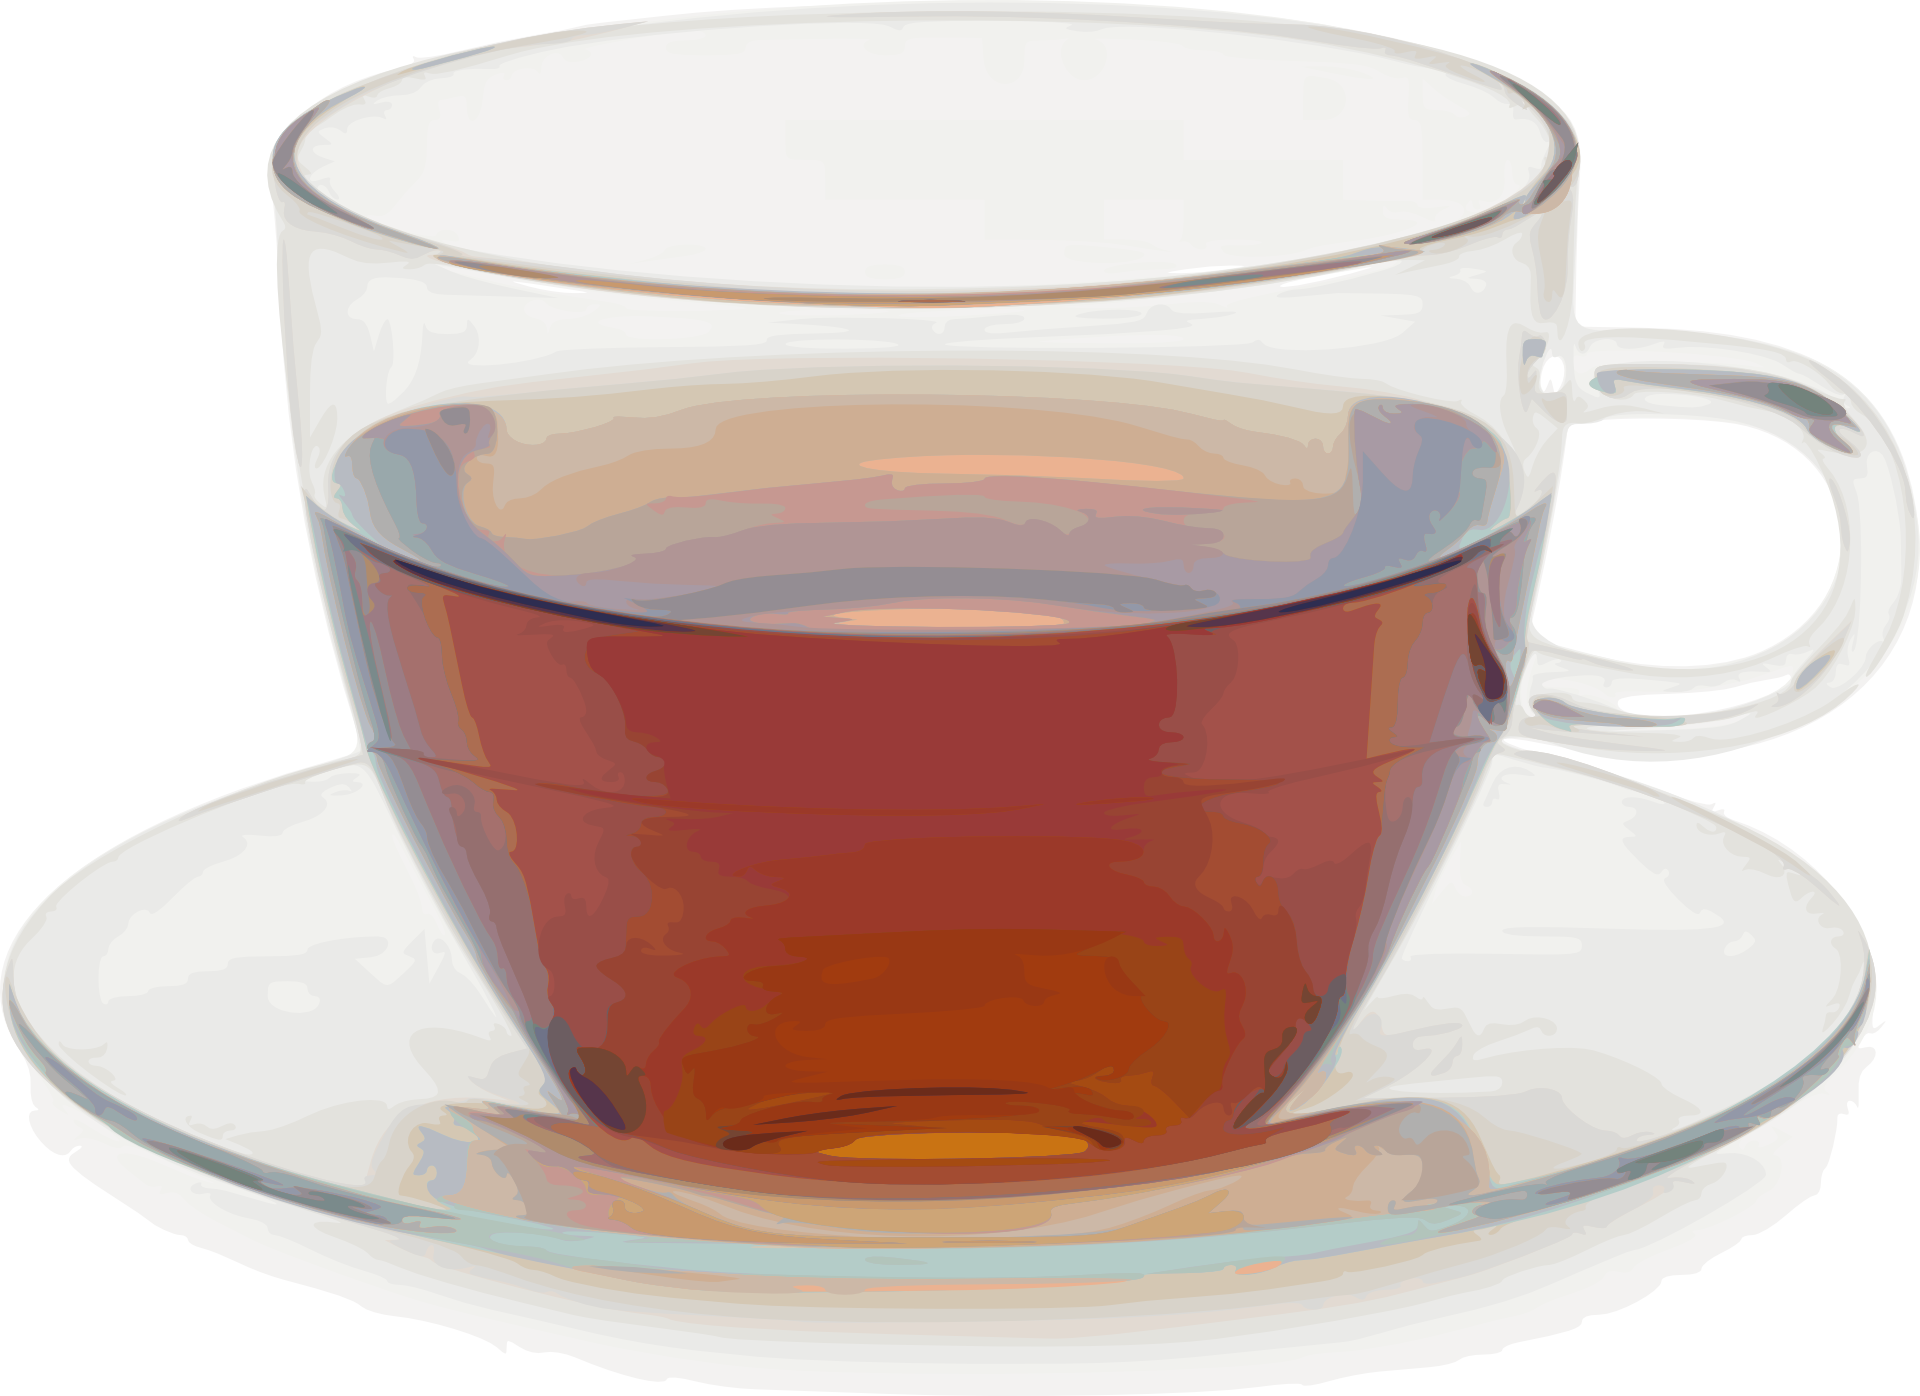 Tea in a Cup PNG Image.